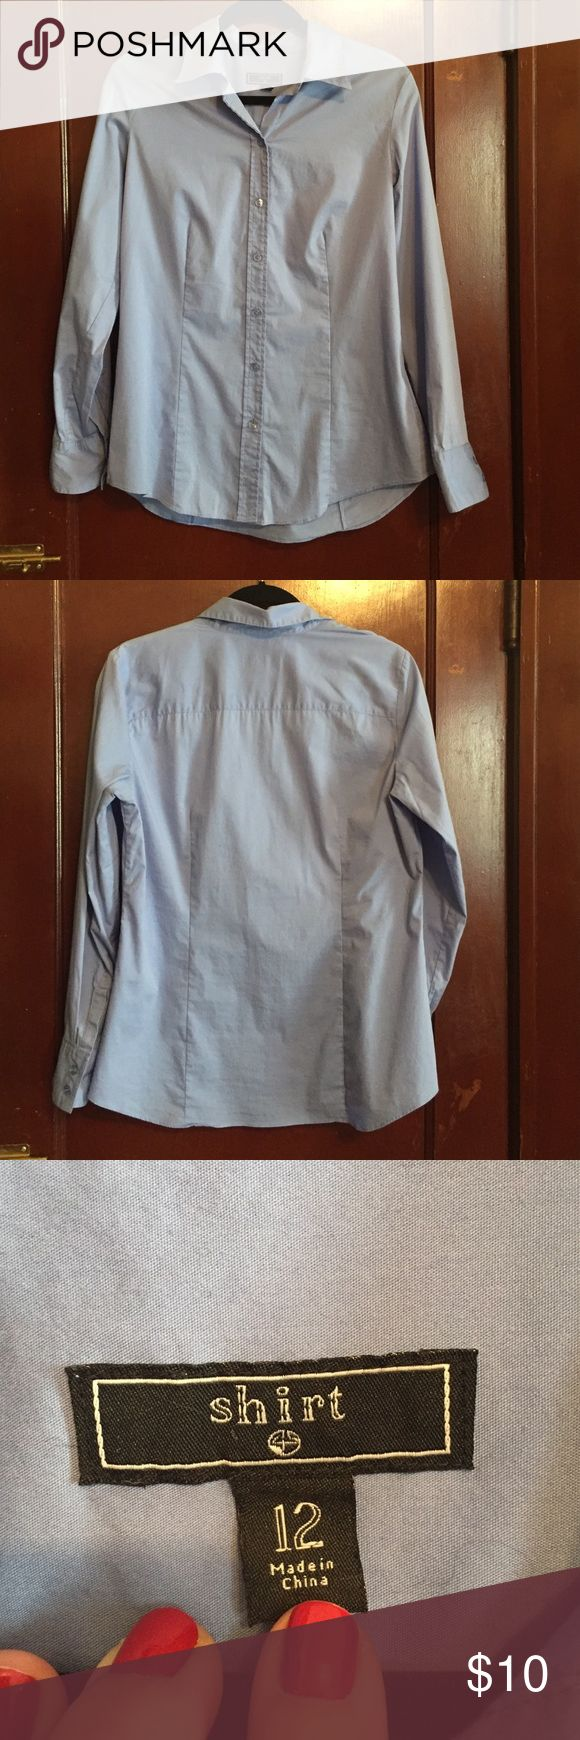 Light blue dress shirt Simple and elegant, hardly worn, replacement button included on inside tag. 70% cotton, 27% nylon, 3% spandex Tops Button Down Shirts